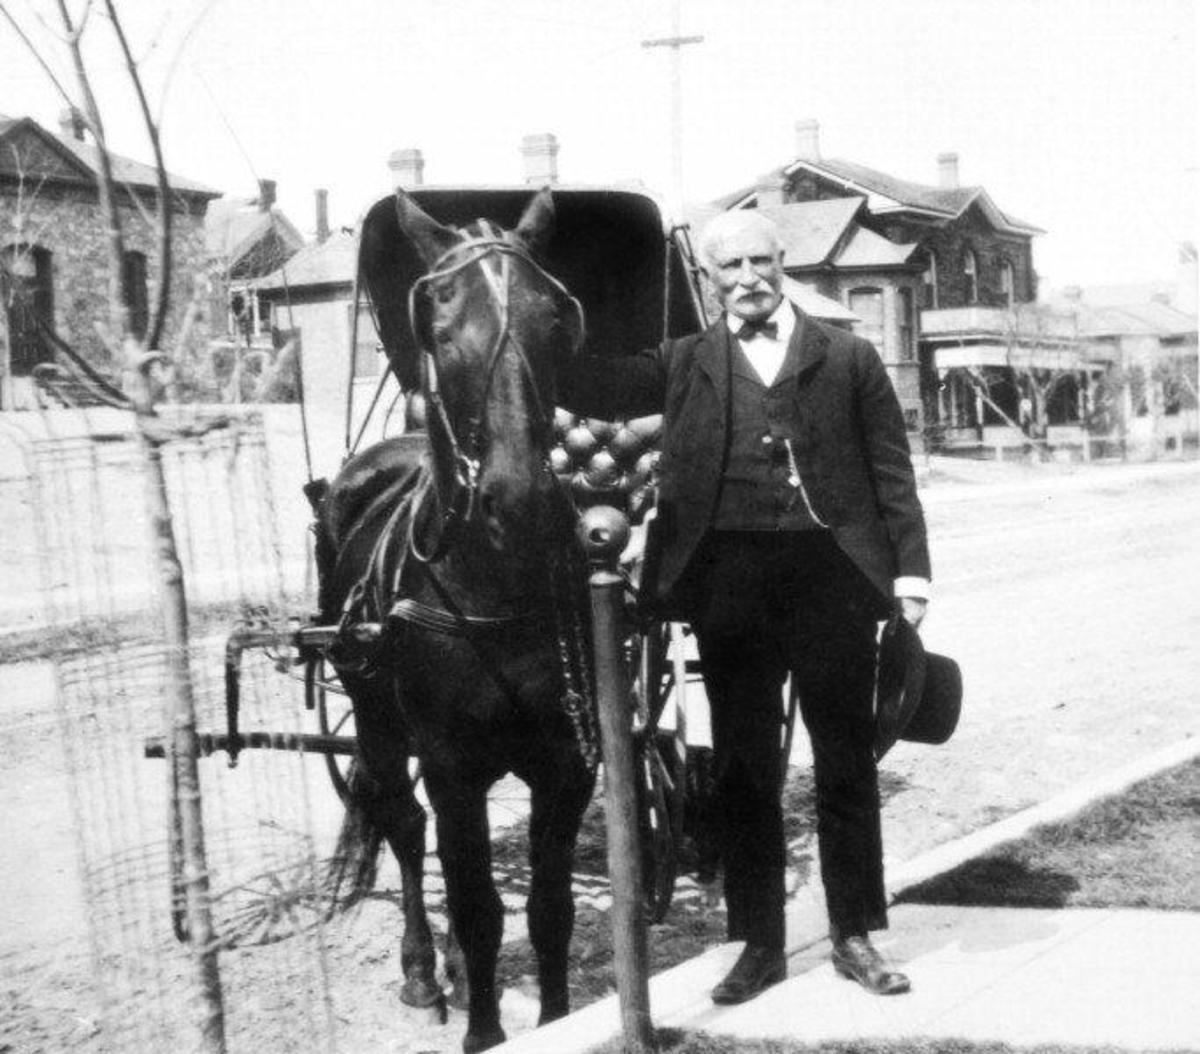 Dr. William W. Mayo is pictured here with his medical supply wagon